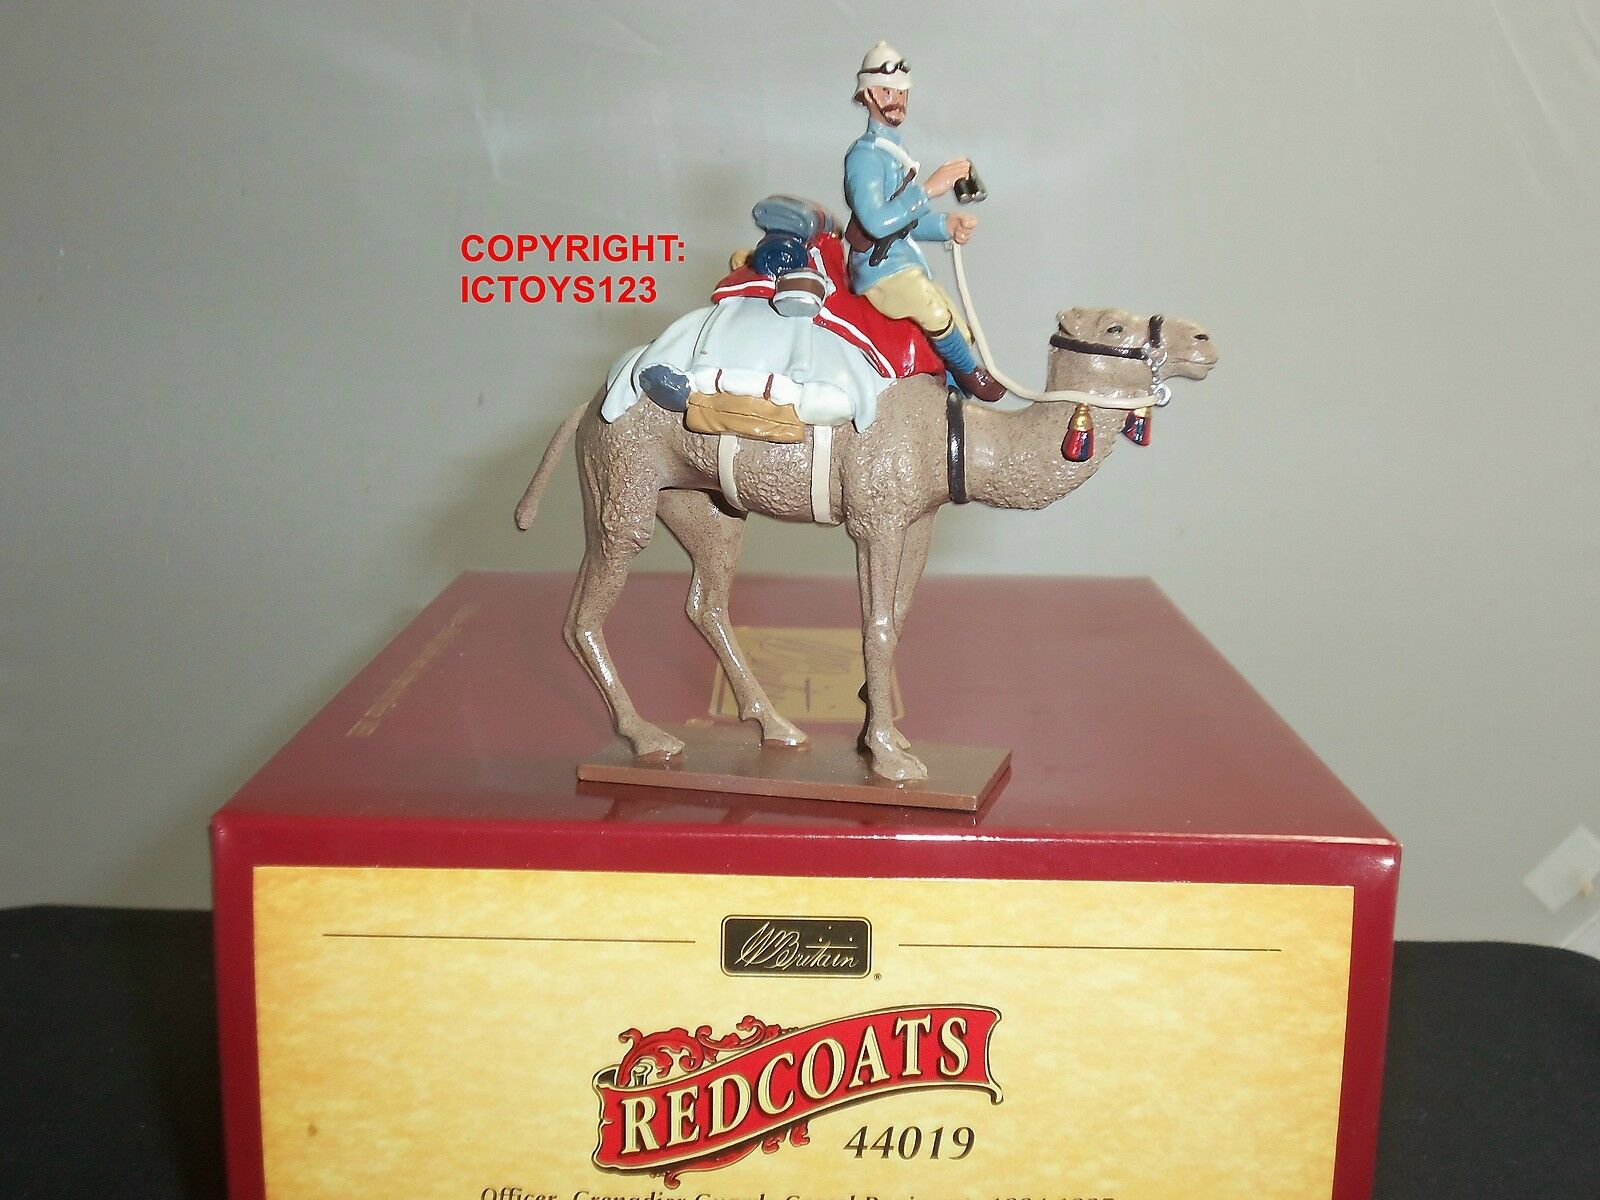 BRITAINS 44019 REDCOATS BRITISH GRENADIER GUARDS MOUNTED ON CAMEL TOY SOLDIER